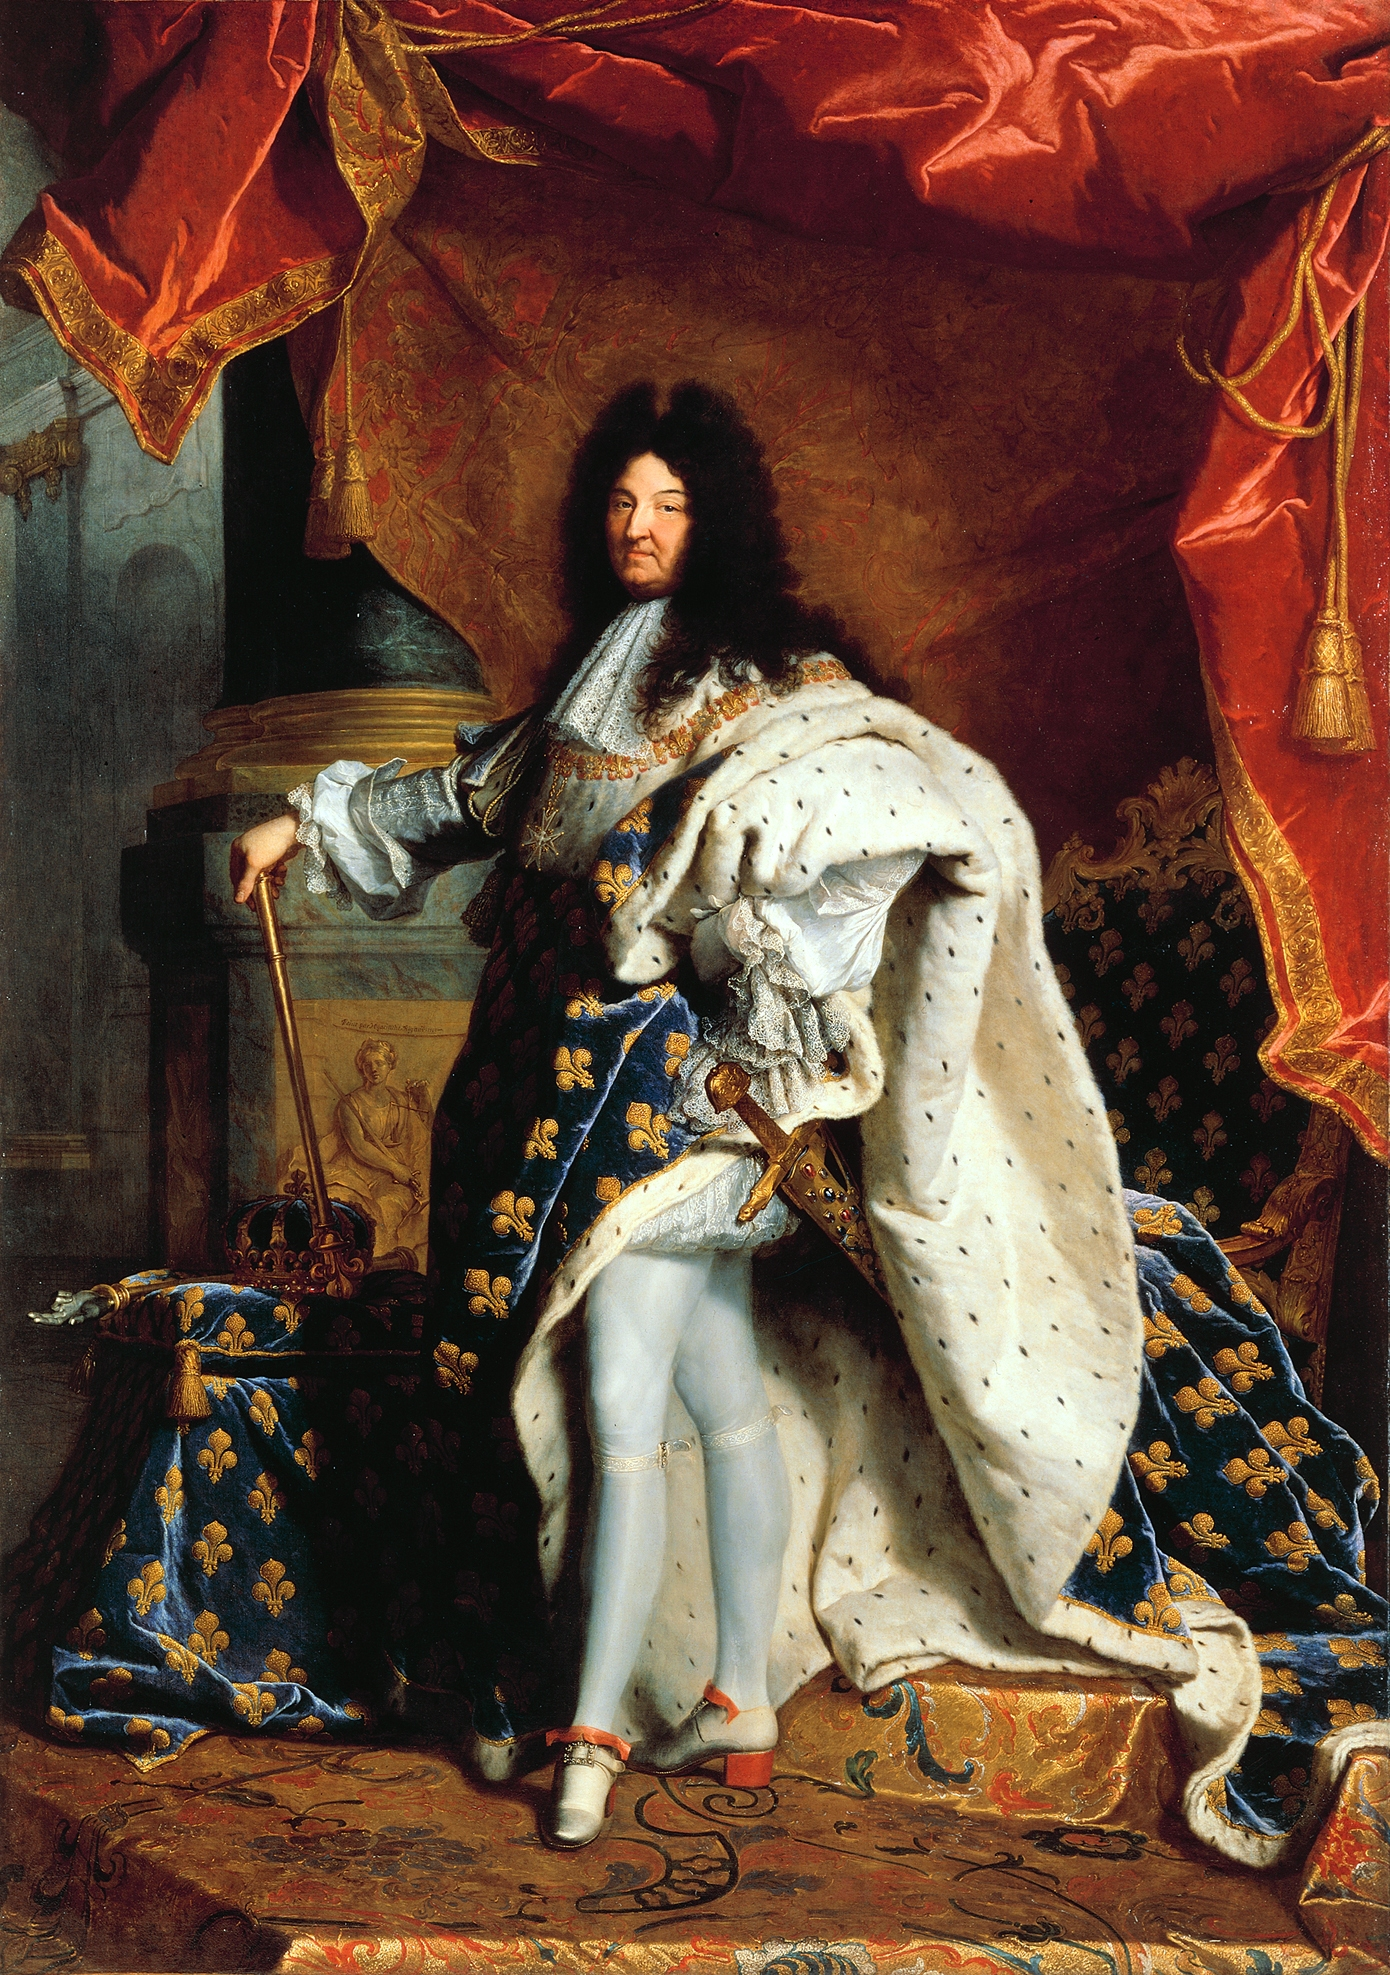 https://upload.wikimedia.org/wikipedia/commons/5/5f/Louis_XIV_of_France.jpg